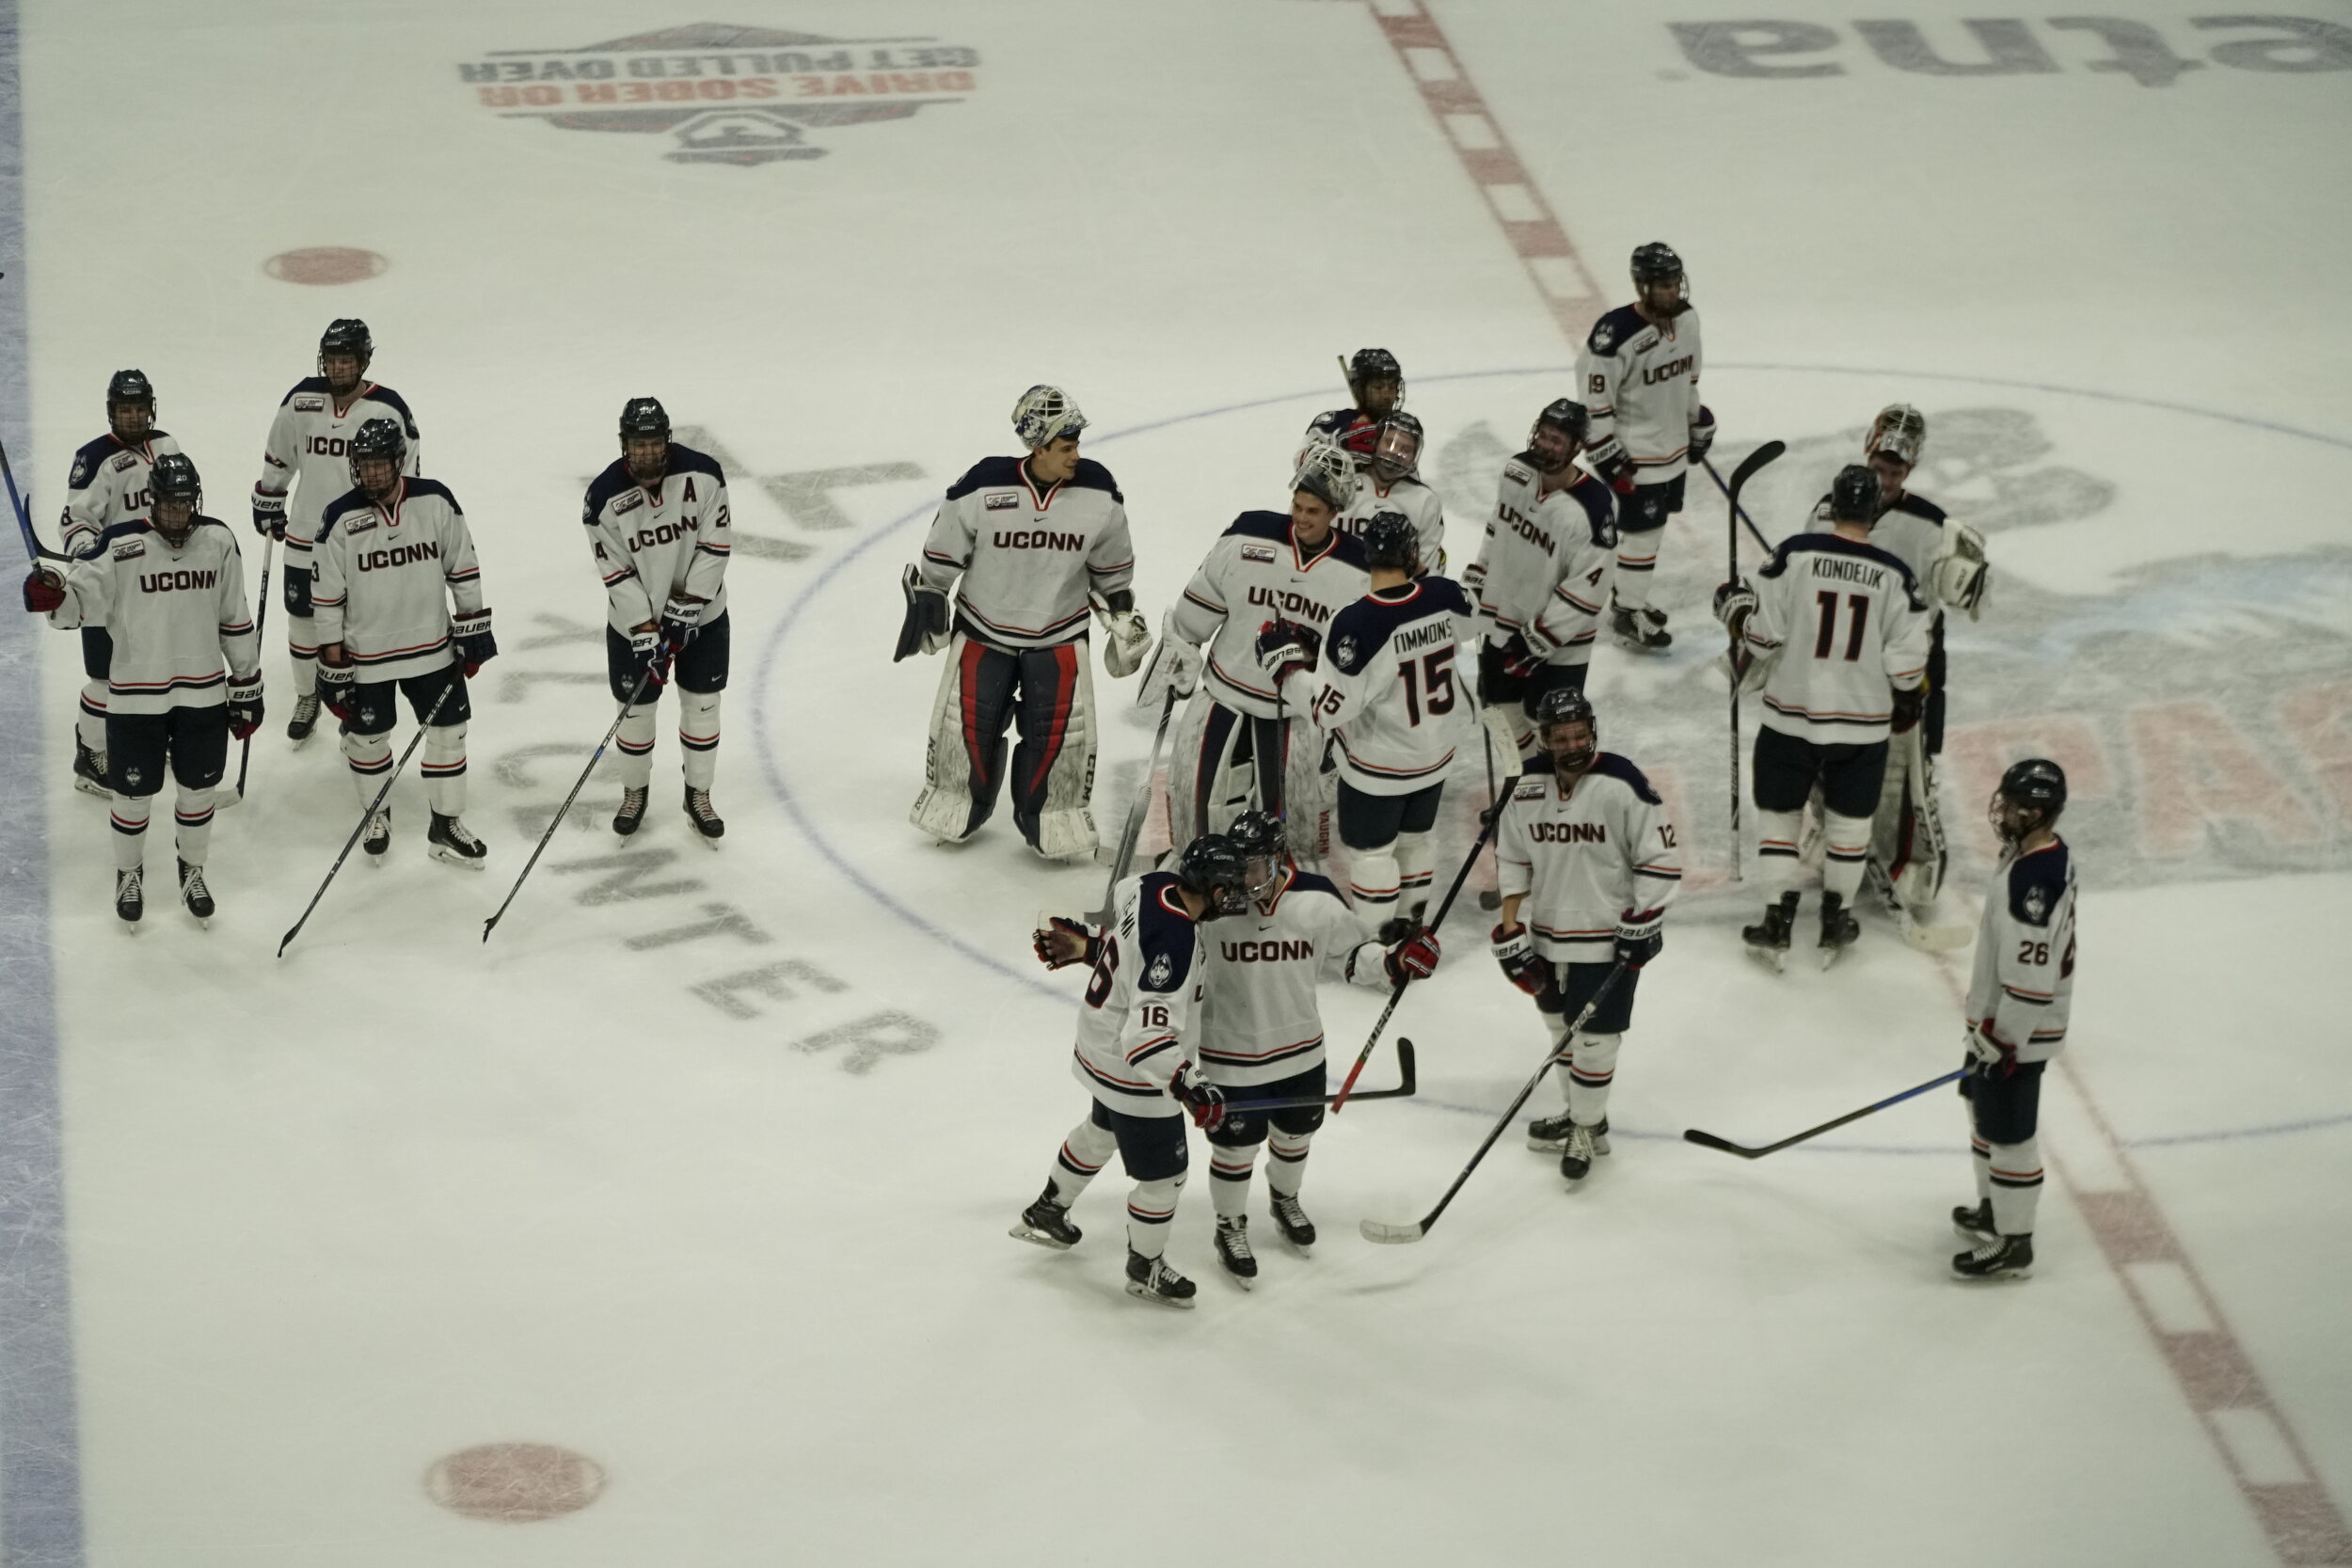 The Huskies won 4-3 against the UMass Minutemen on Friday. They also celebrated Senior Night for their three seniors: Miles Gendron (10), Karl El-Mir (16) and Max Kalter (18) as their last season game.  Photo by Eric Wang/The Daily Campus.